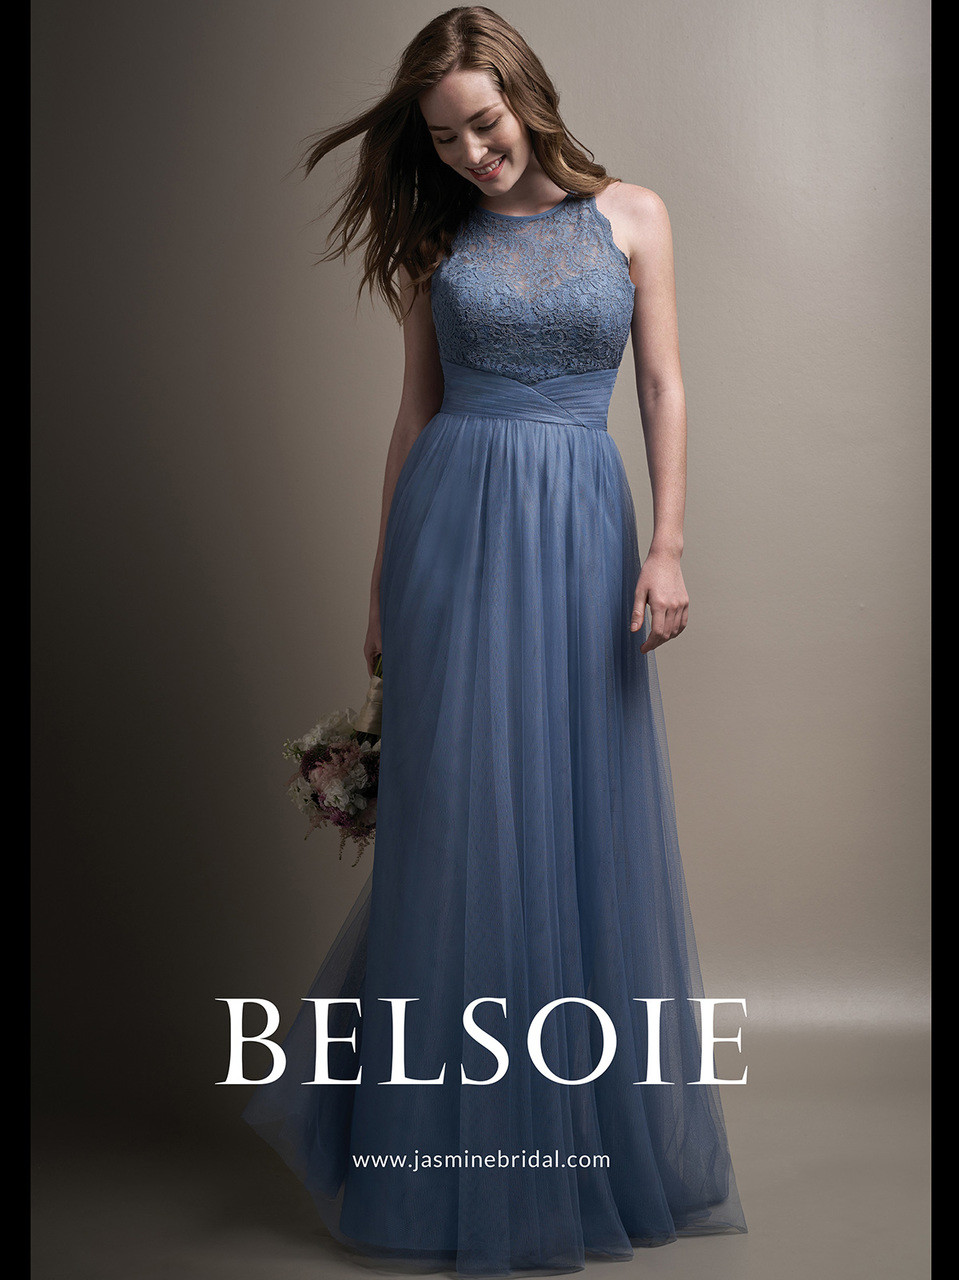 cdc1d4b3da Belsoie L194009 Soft Tulle A-line Bridesmaid Dress - DimitraDesigns.com